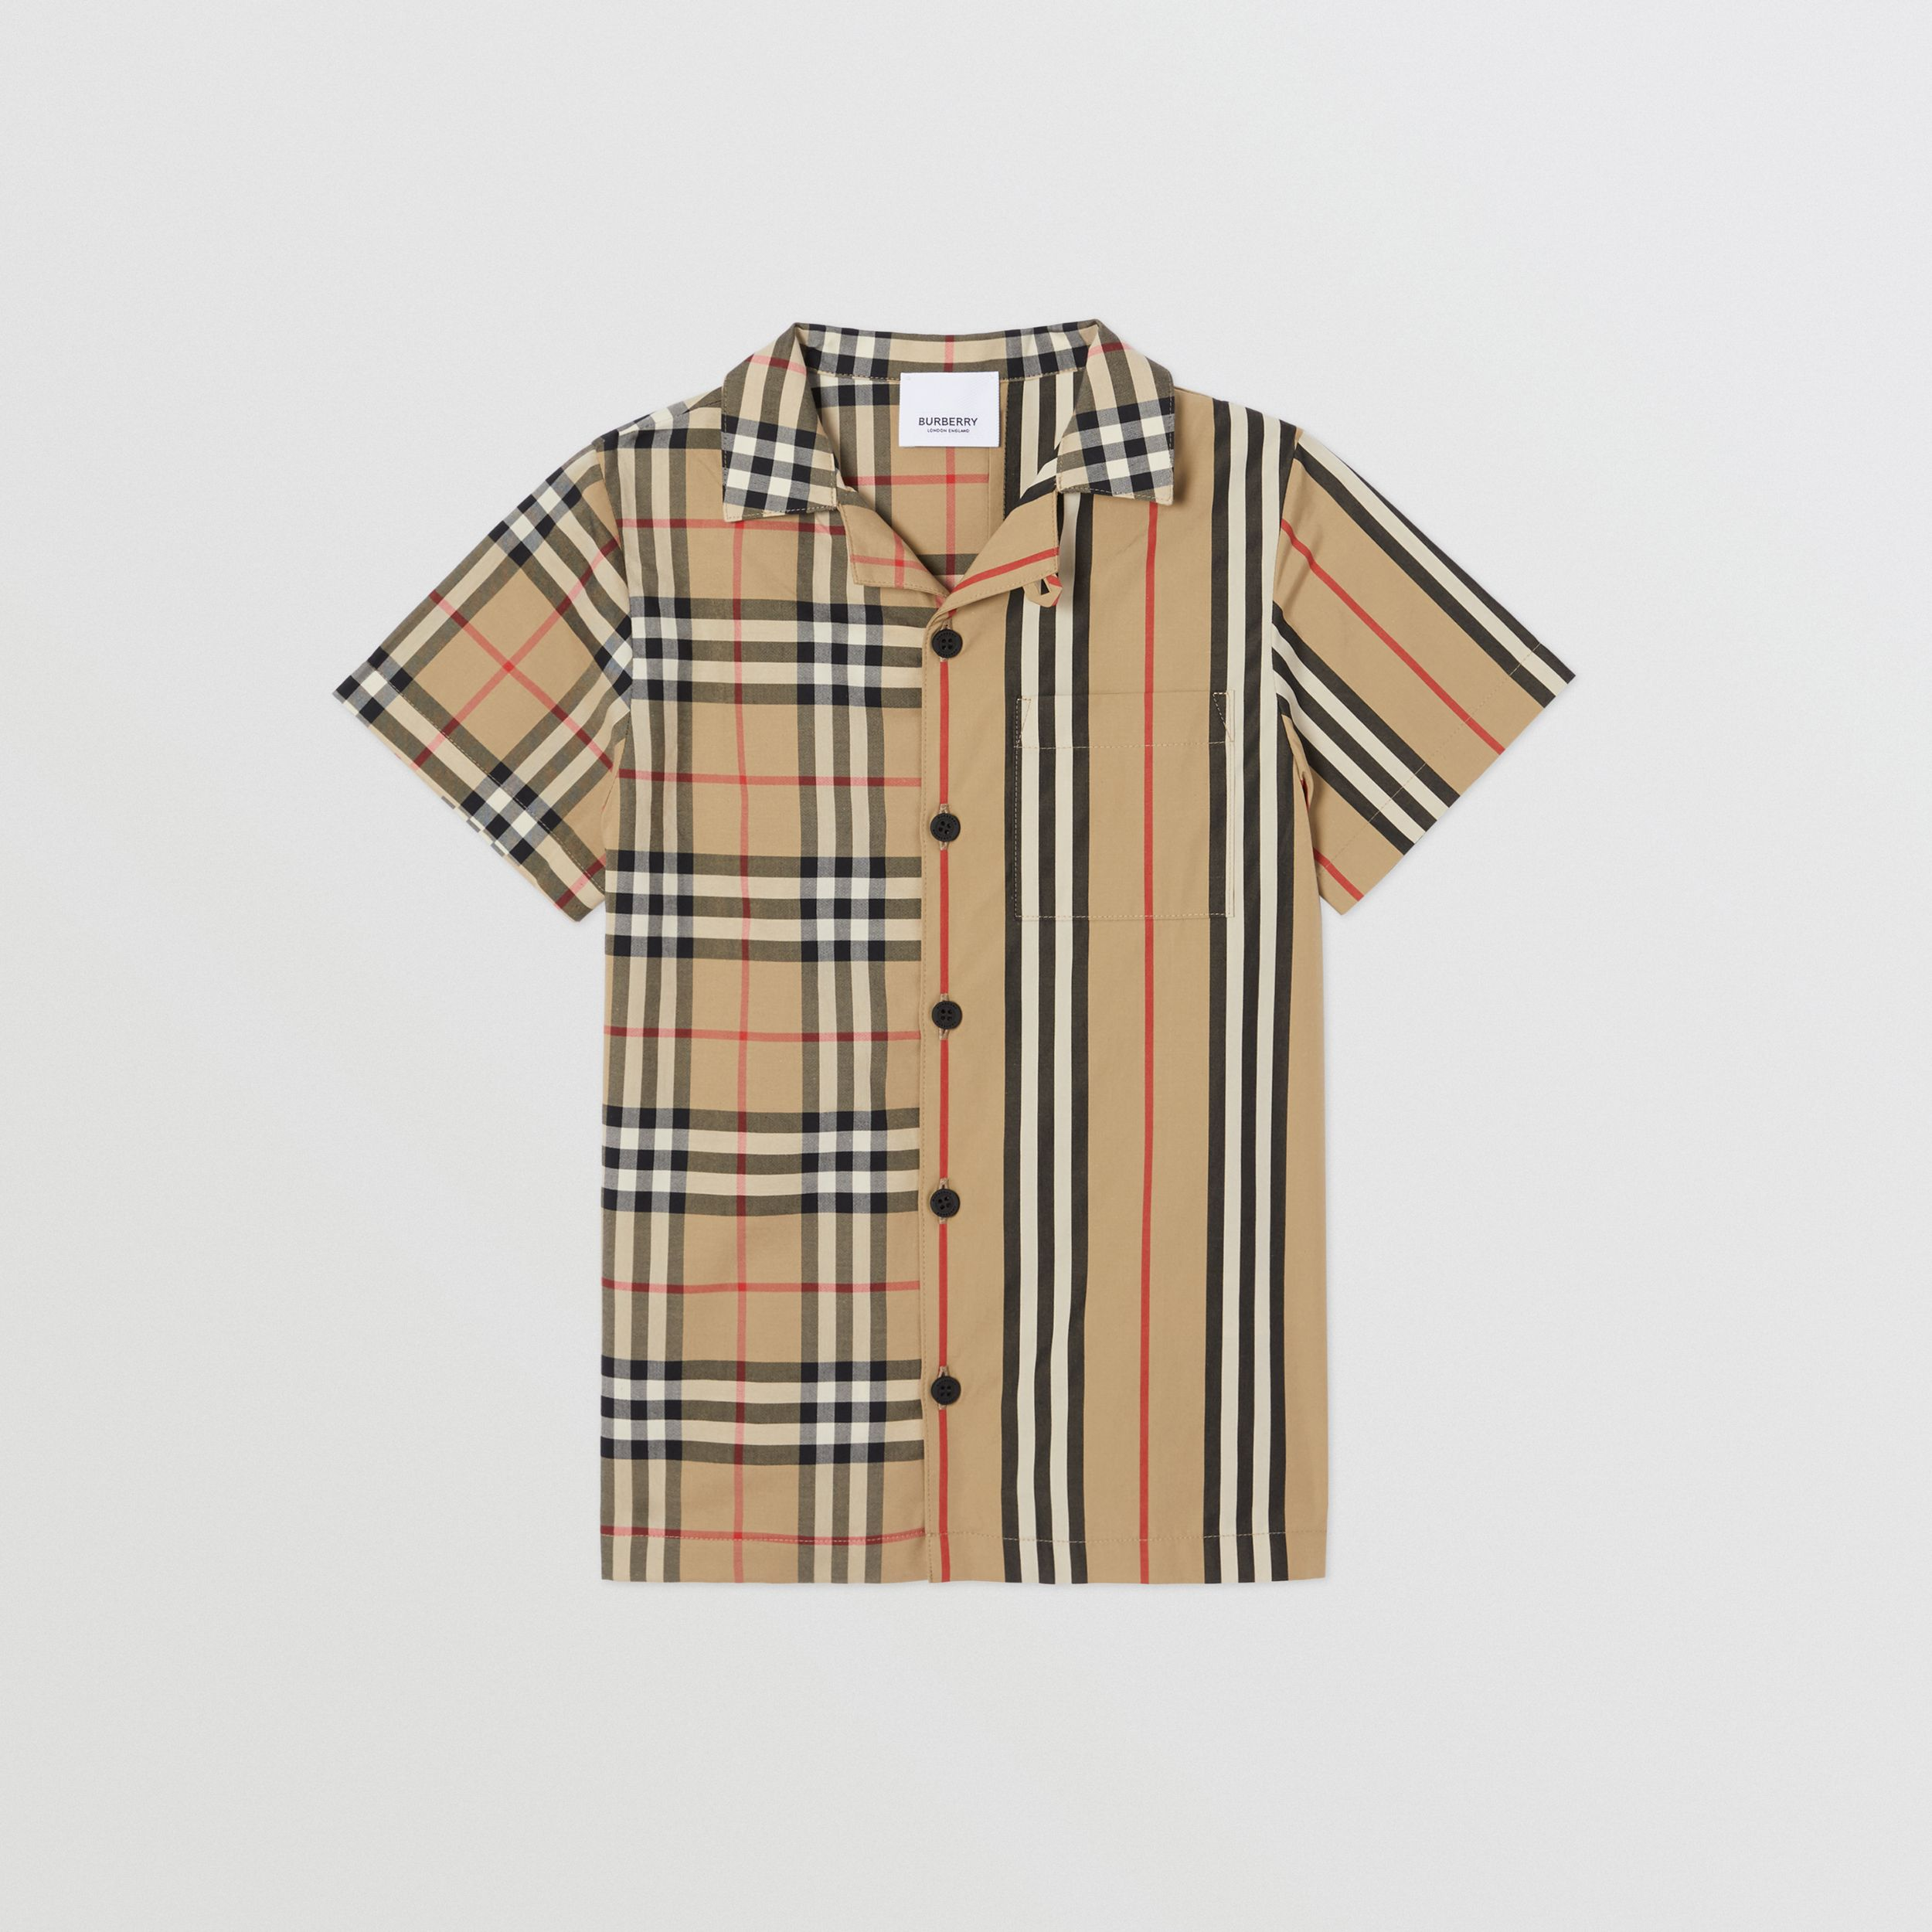 Short-sleeve Vintage Check and Icon Stripe Shirt in Archive Beige | Burberry - 1